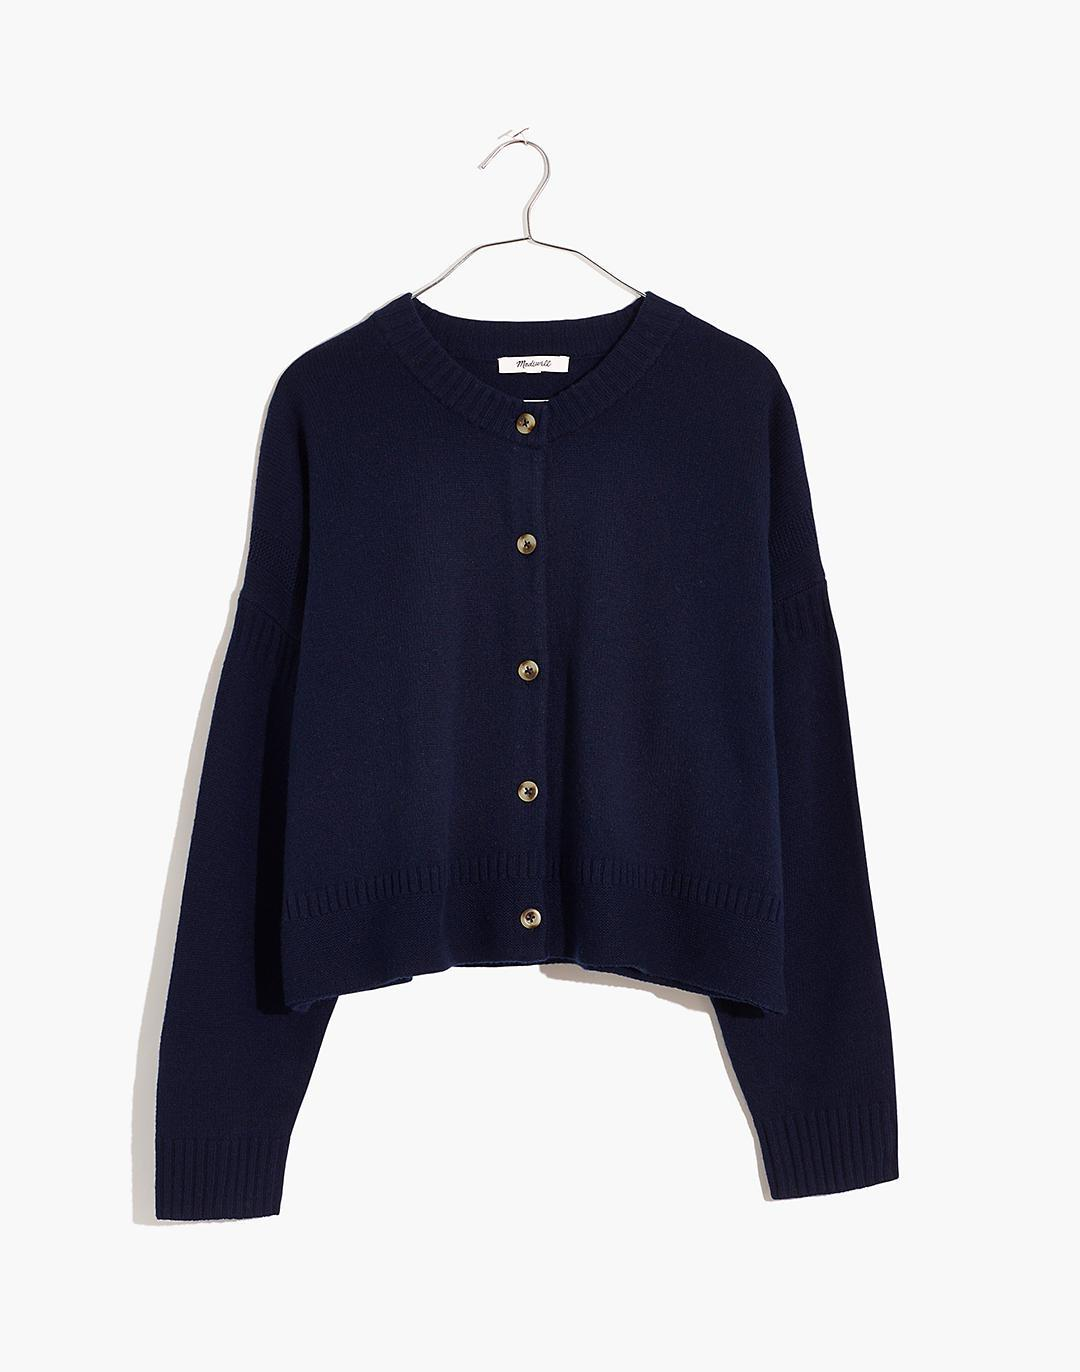 Clemence Cropped Cardigan Sweater